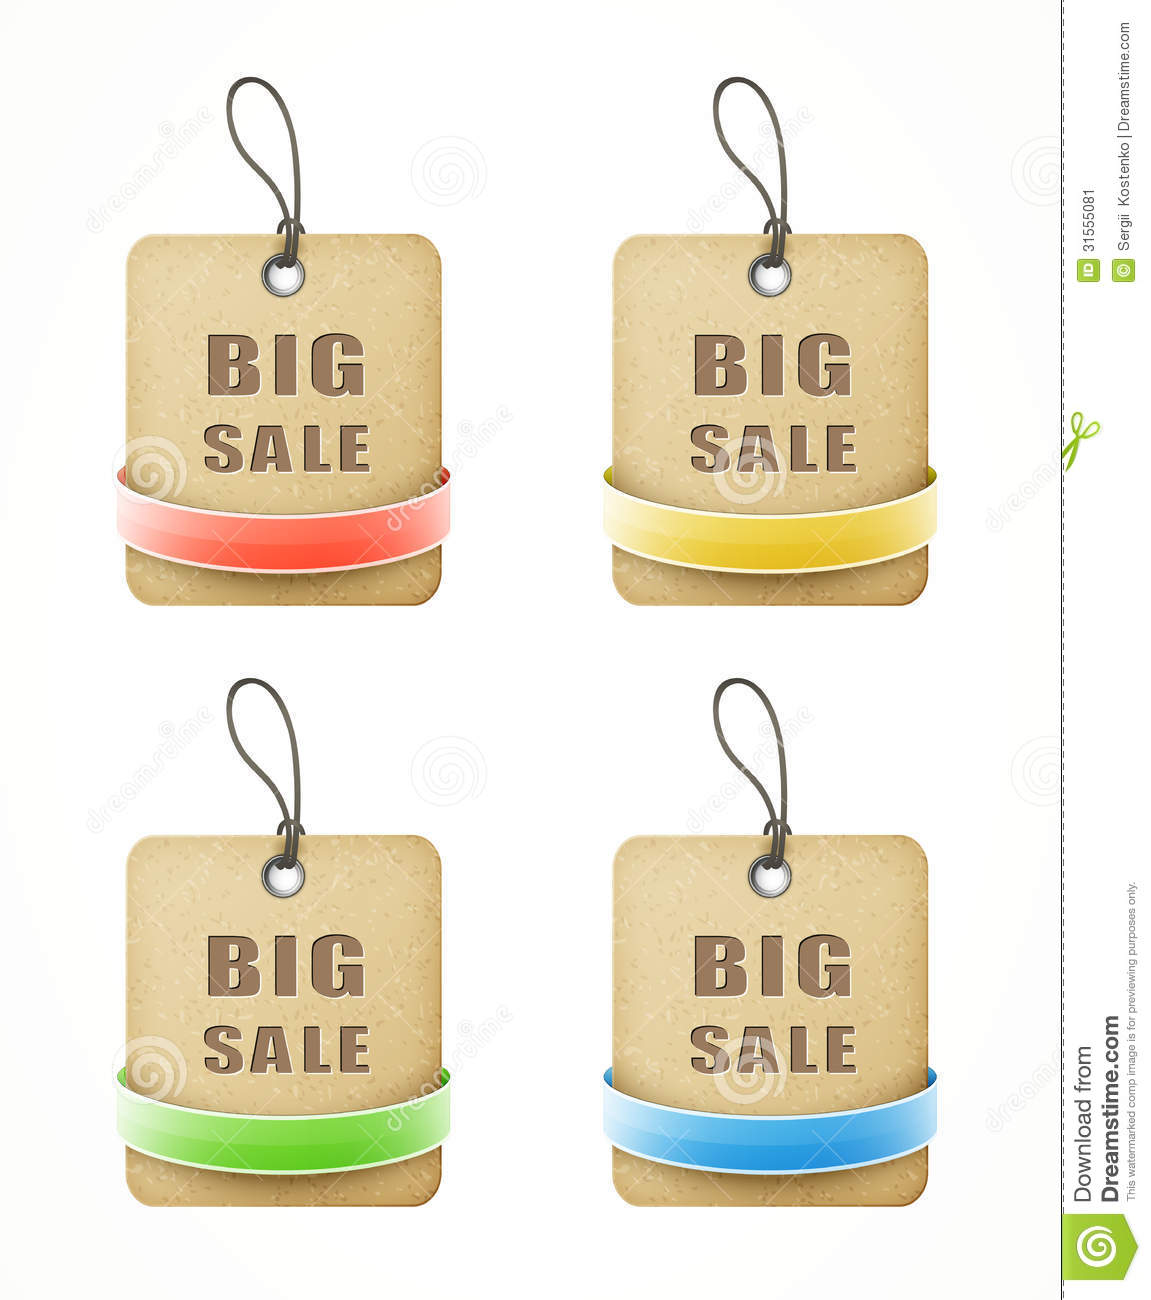 sale papers Finding a quality custom essays for sale can be hard choose 12hoursessay com to be sure of quality services, your confidentiality and cheap prices our best .